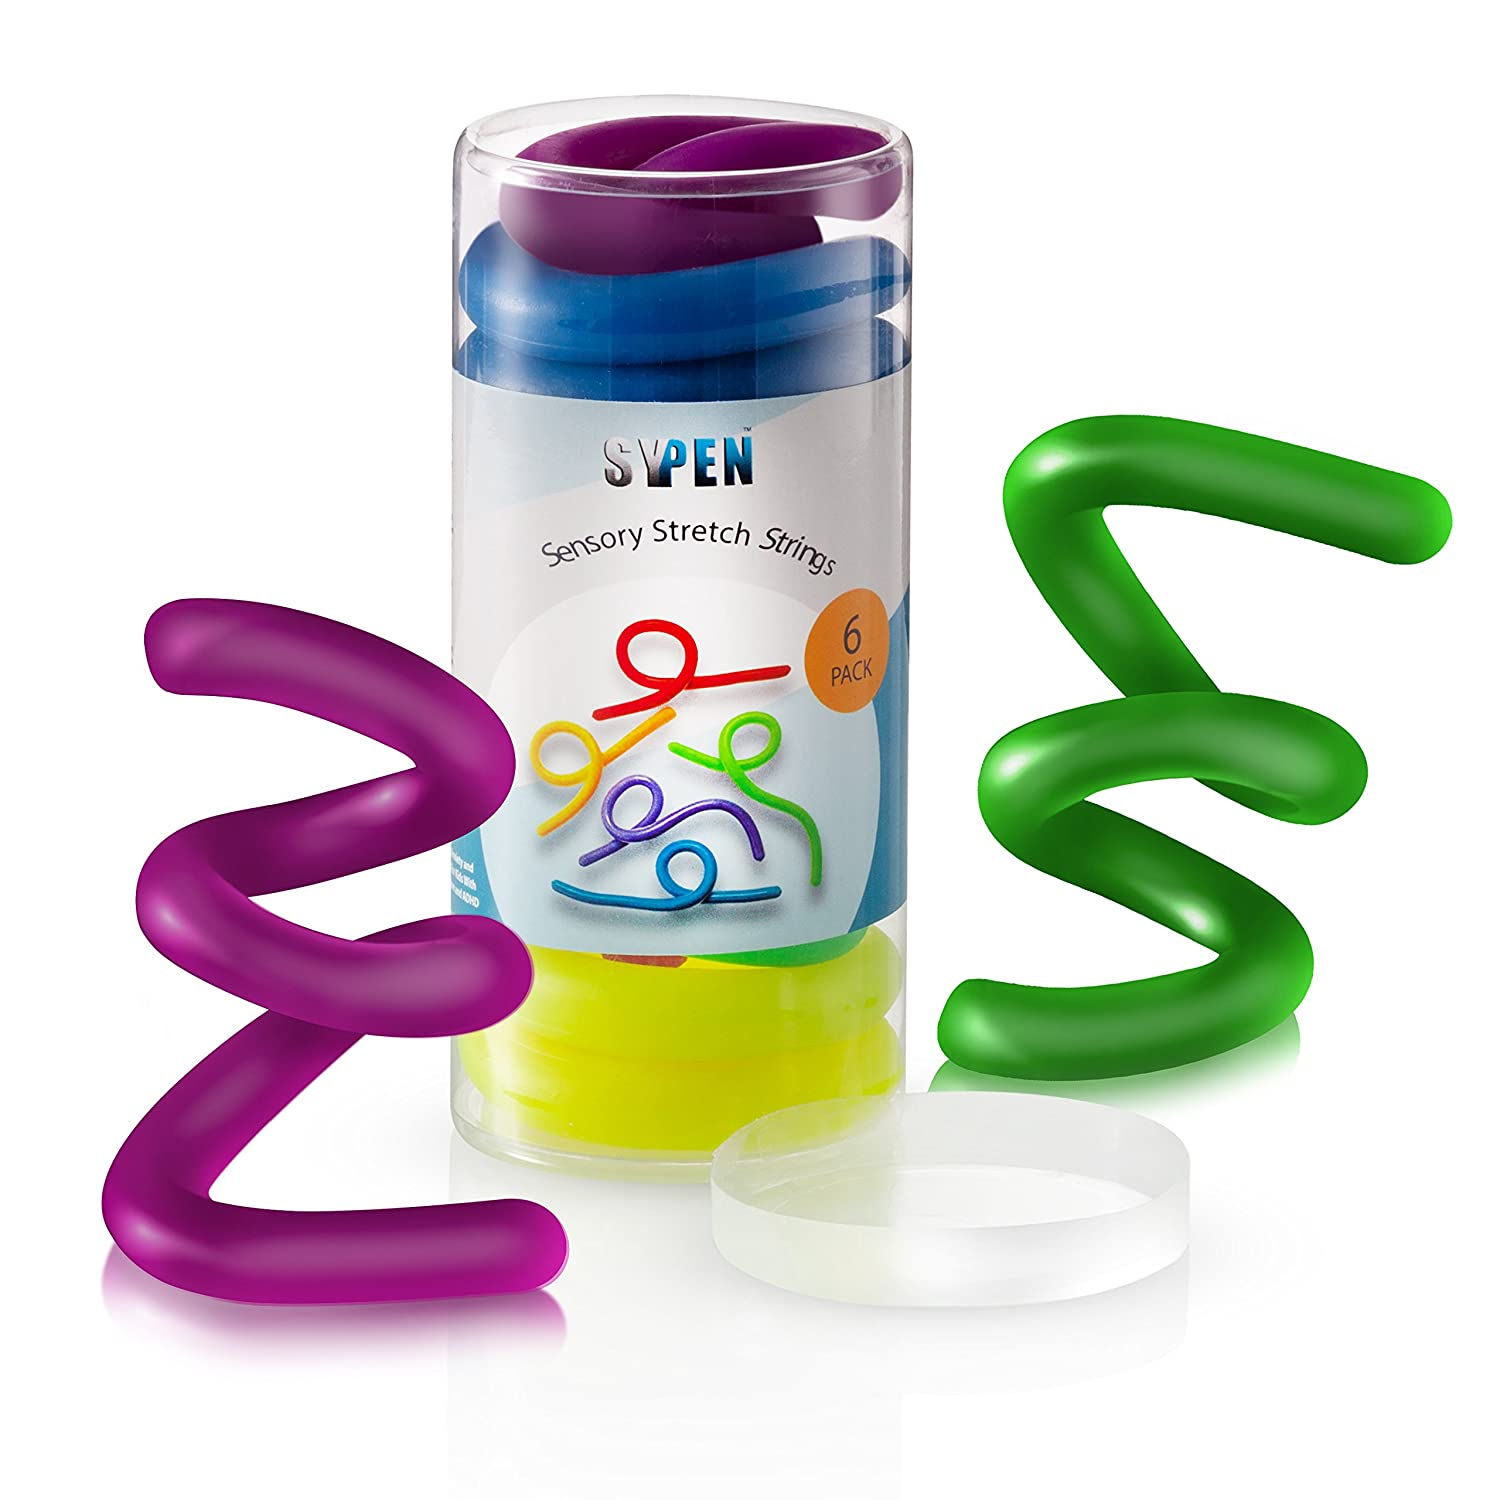 SyPen Sensory Stretchy String Fidget Toys Stretchable and Flexible from 10 Inches to 8' Anxiety and Stress Relief for Kids with Special Needs Autism and ADHD BPA Phthalate Latex Free 6 Pack